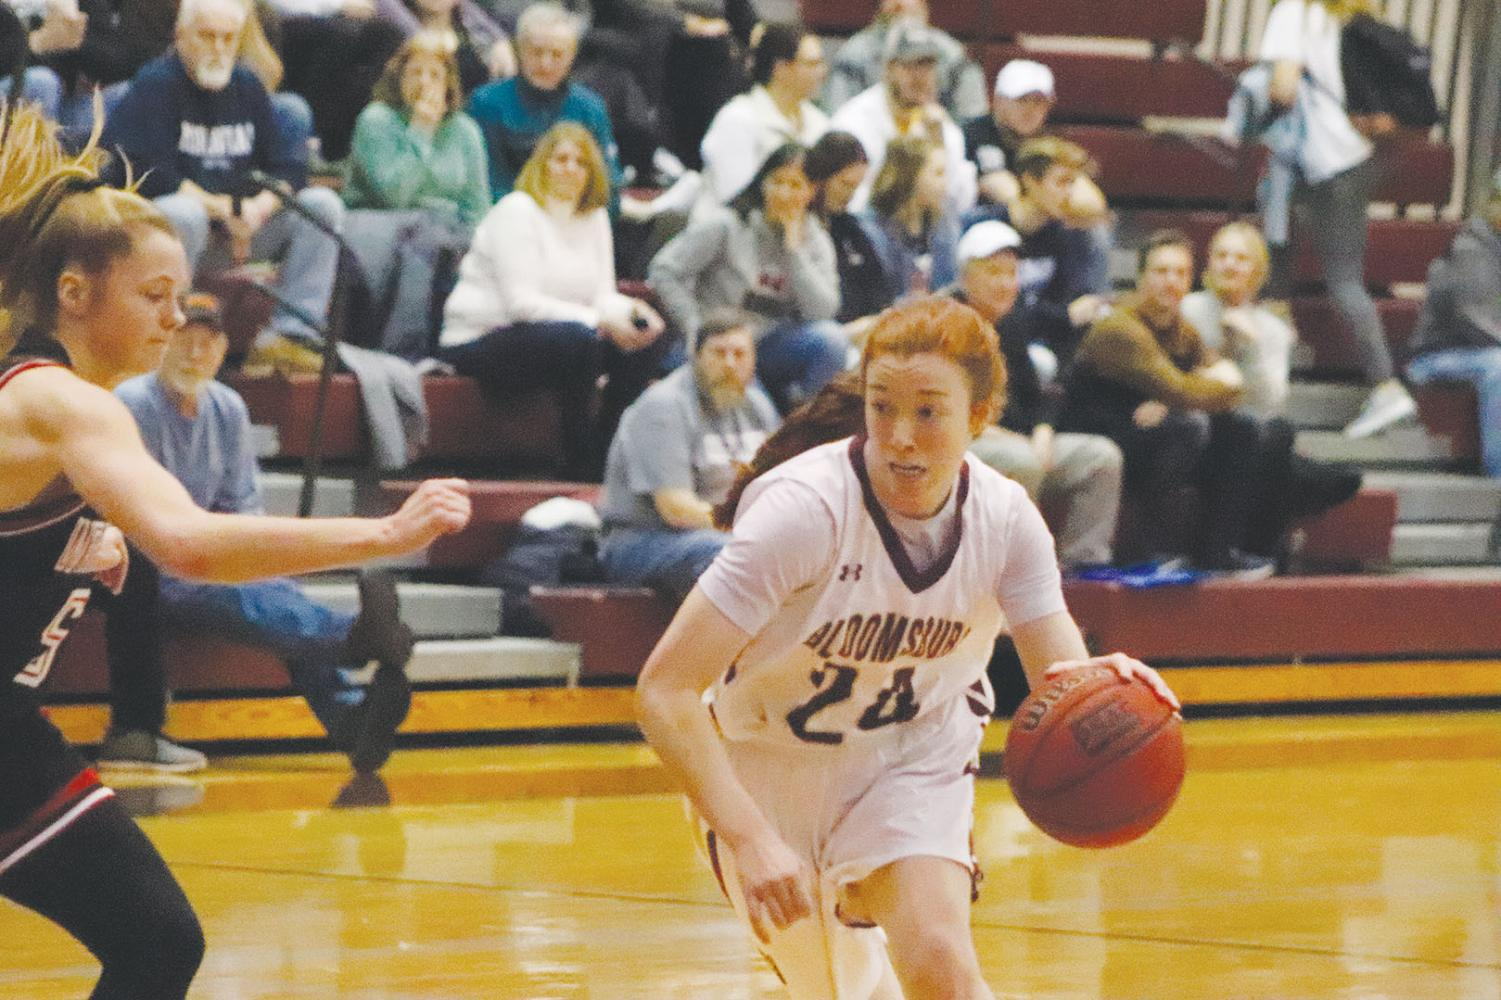 Emma Saxton drives to the lane against Mansfield.